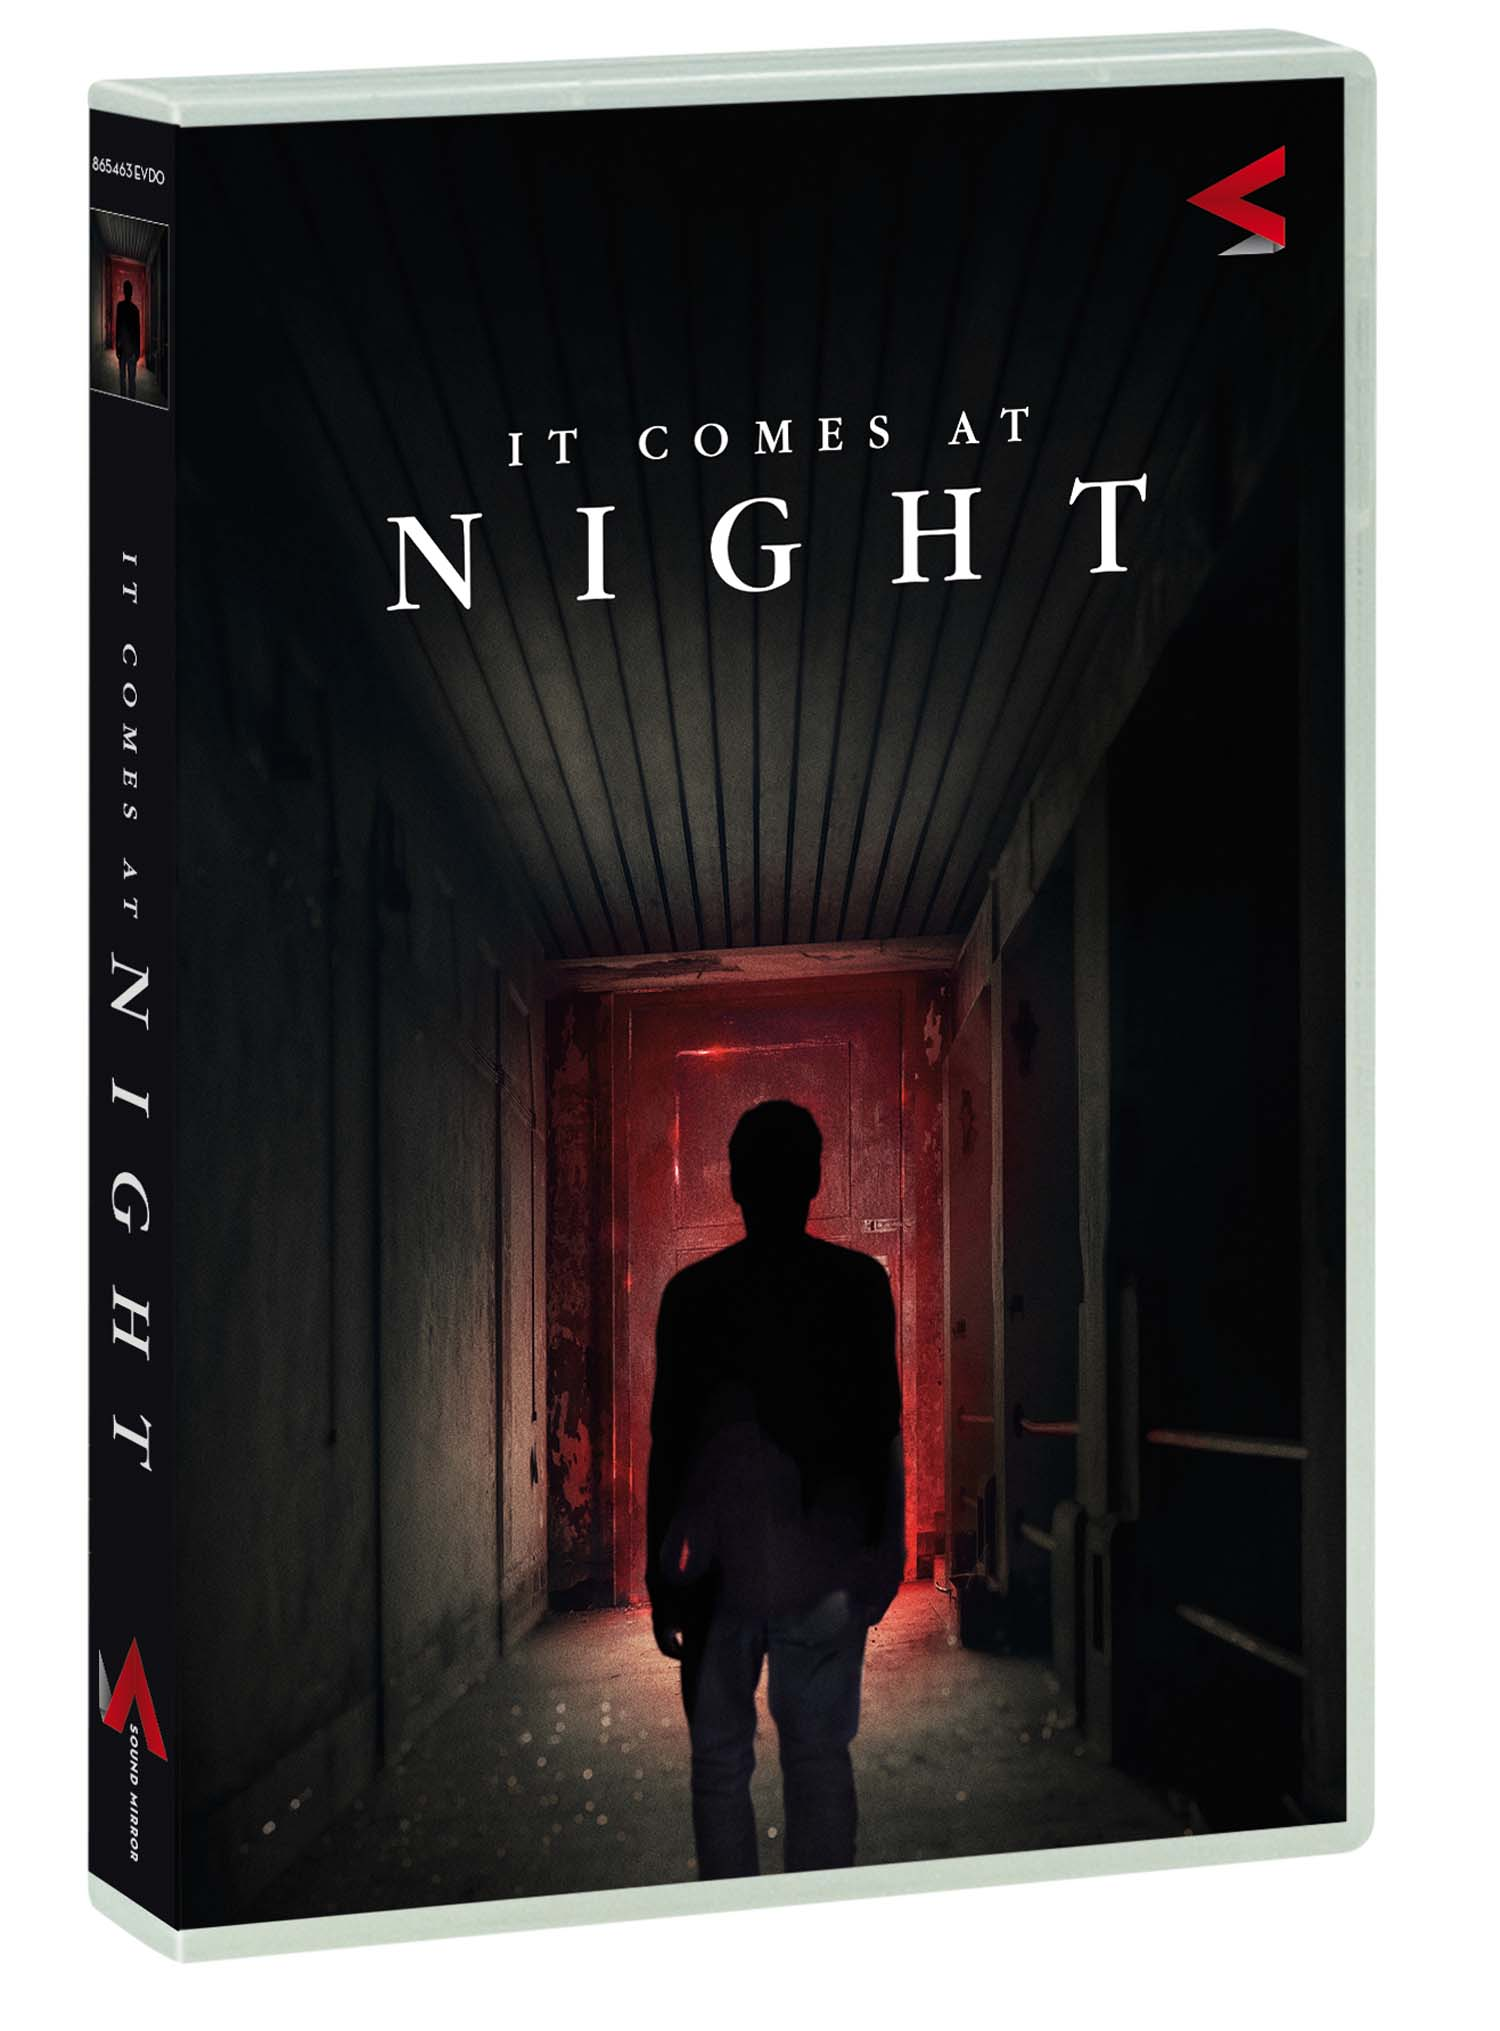 IT COMES AT NIGHT (TOMBSTONE COLLECTION) (DVD)